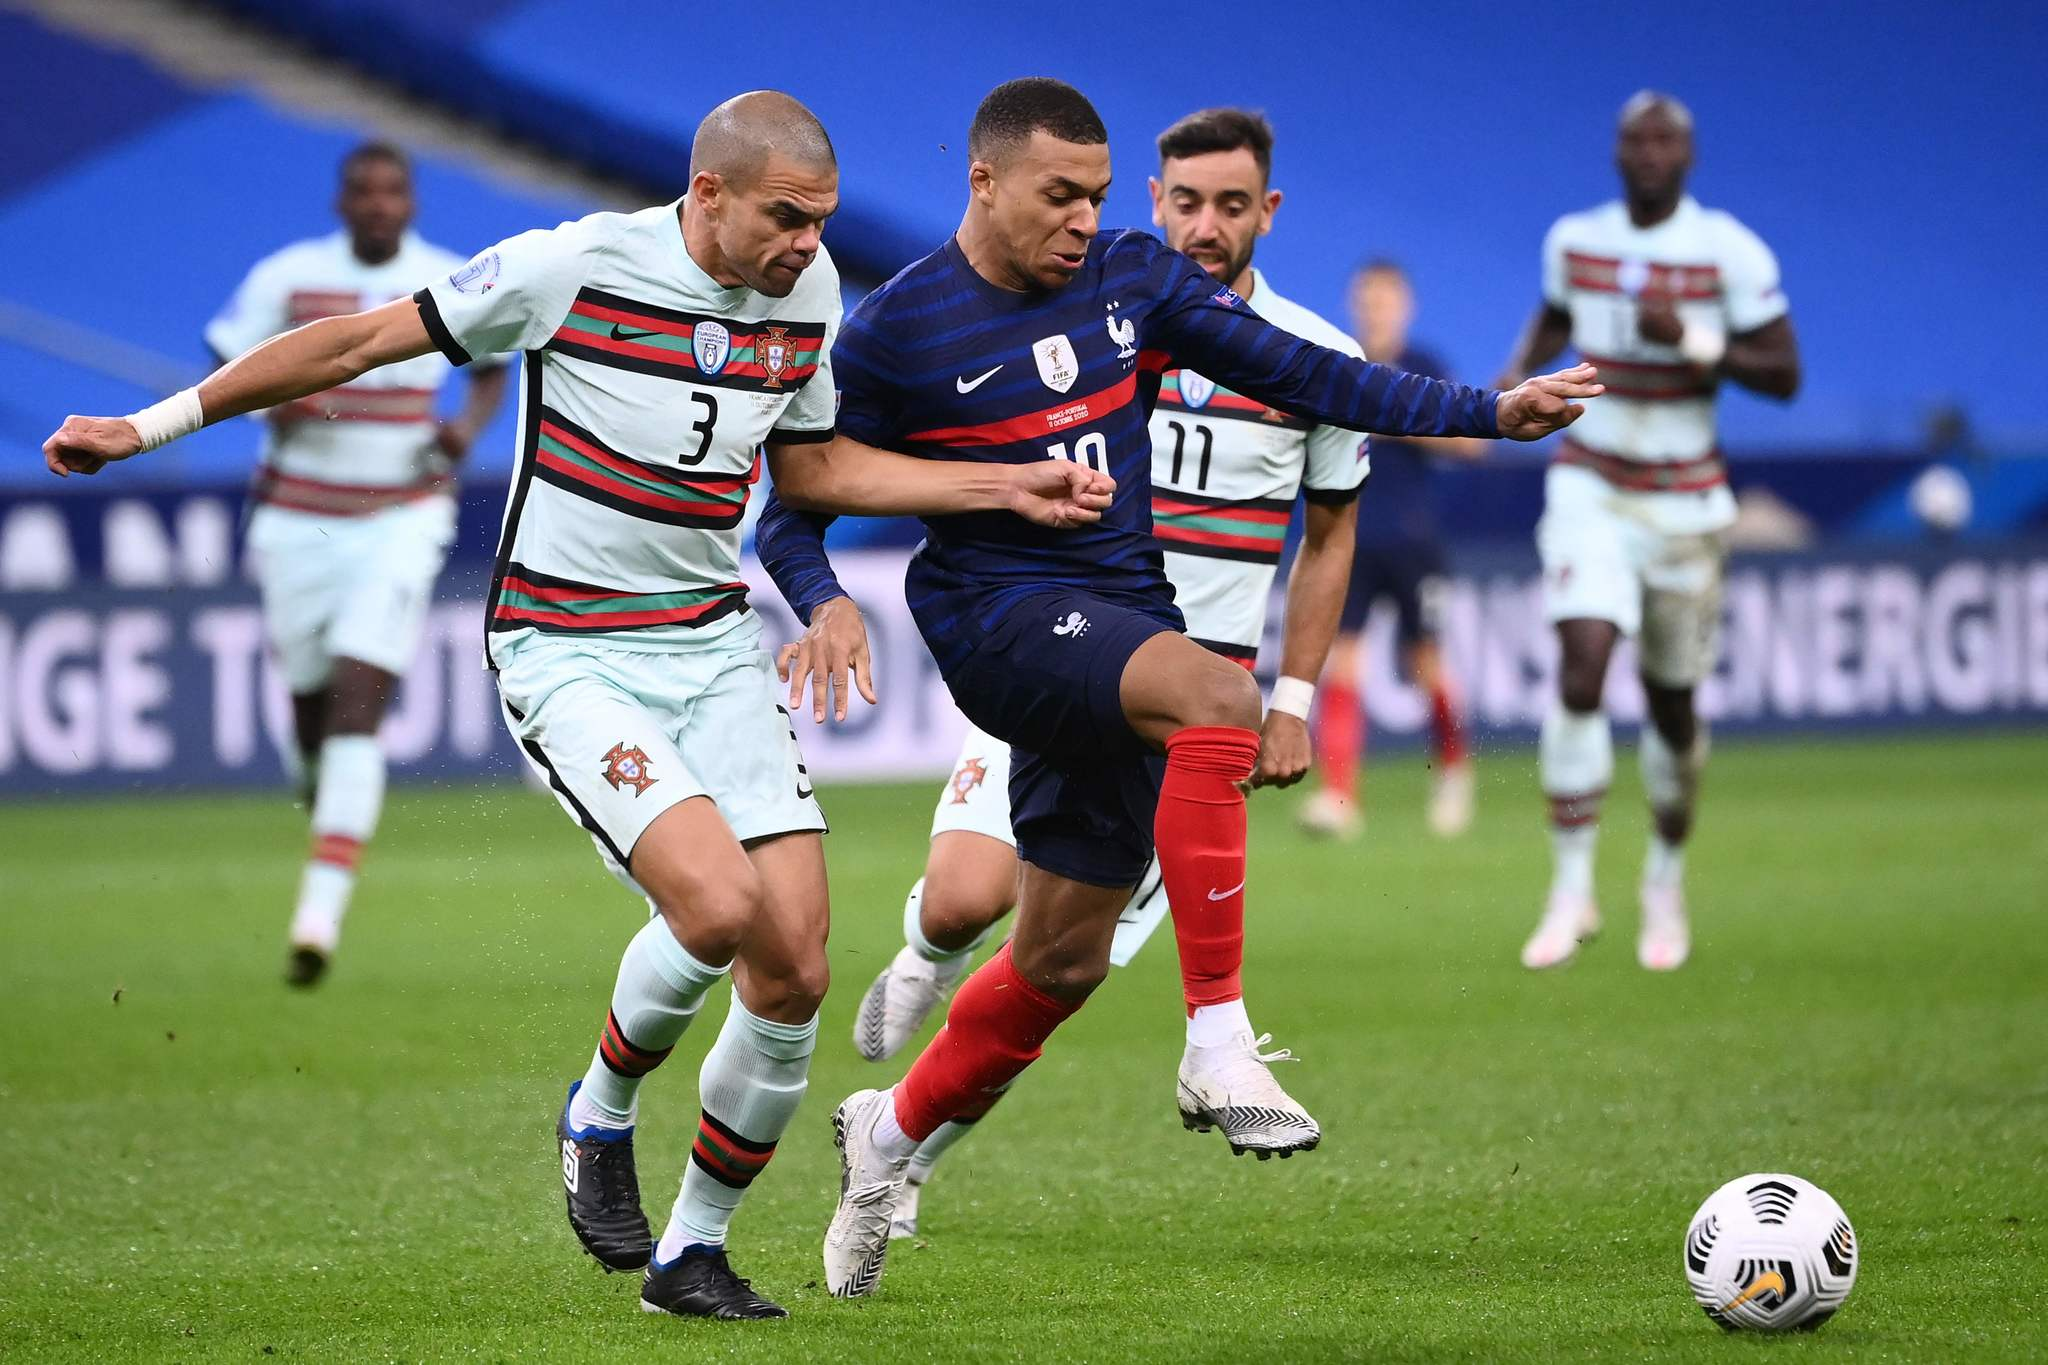 Portugals defender lt;HIT gt;Pepe lt;/HIT gt; (L) vies with Frances forward Kylian Mbappe (C) during the Nations League football match between France and Portugal, on October 11, 2020 at the Stade de France in Saint-Denis, outside Paris. (Photo by FRANCK FIFE / AFP)